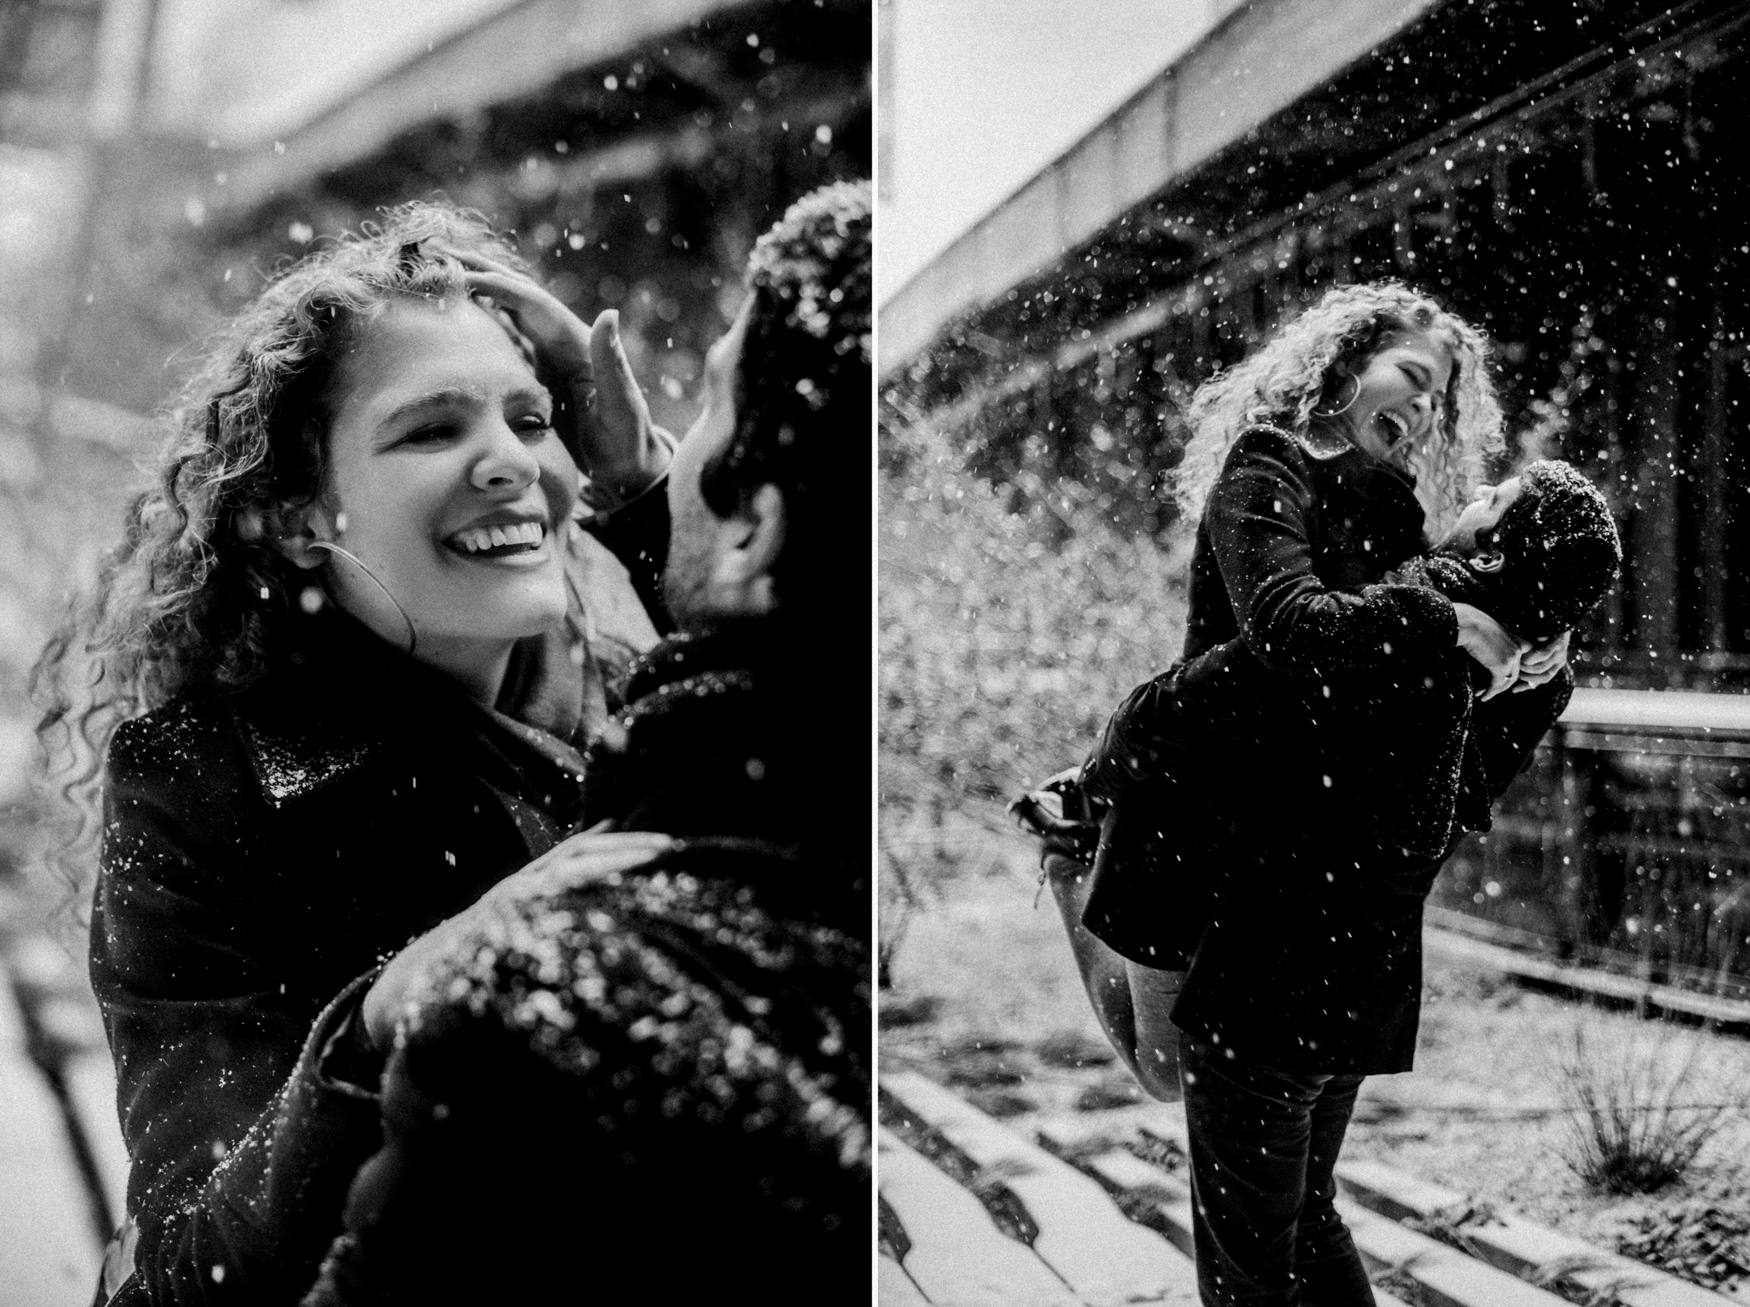 nyc winter snowy manthattan engagement session 019.jpg